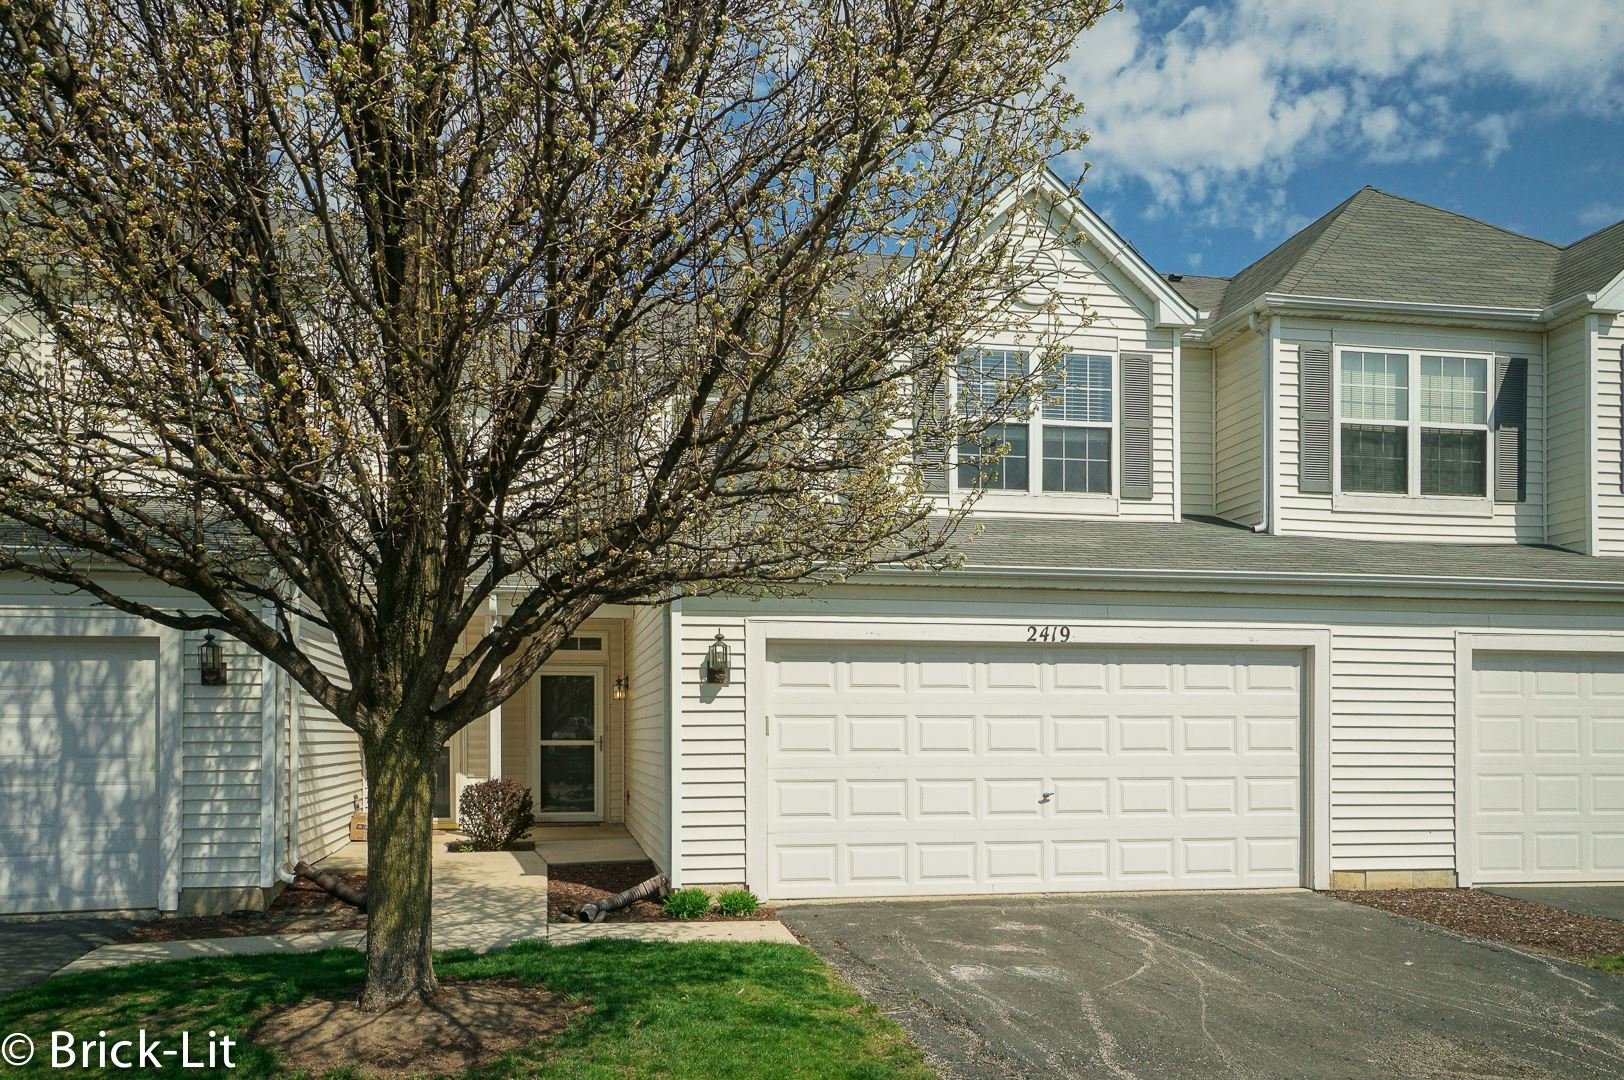 Photo of 2419 Brush Hill Circle, Joliet, IL 60432 (MLS # 11058336)